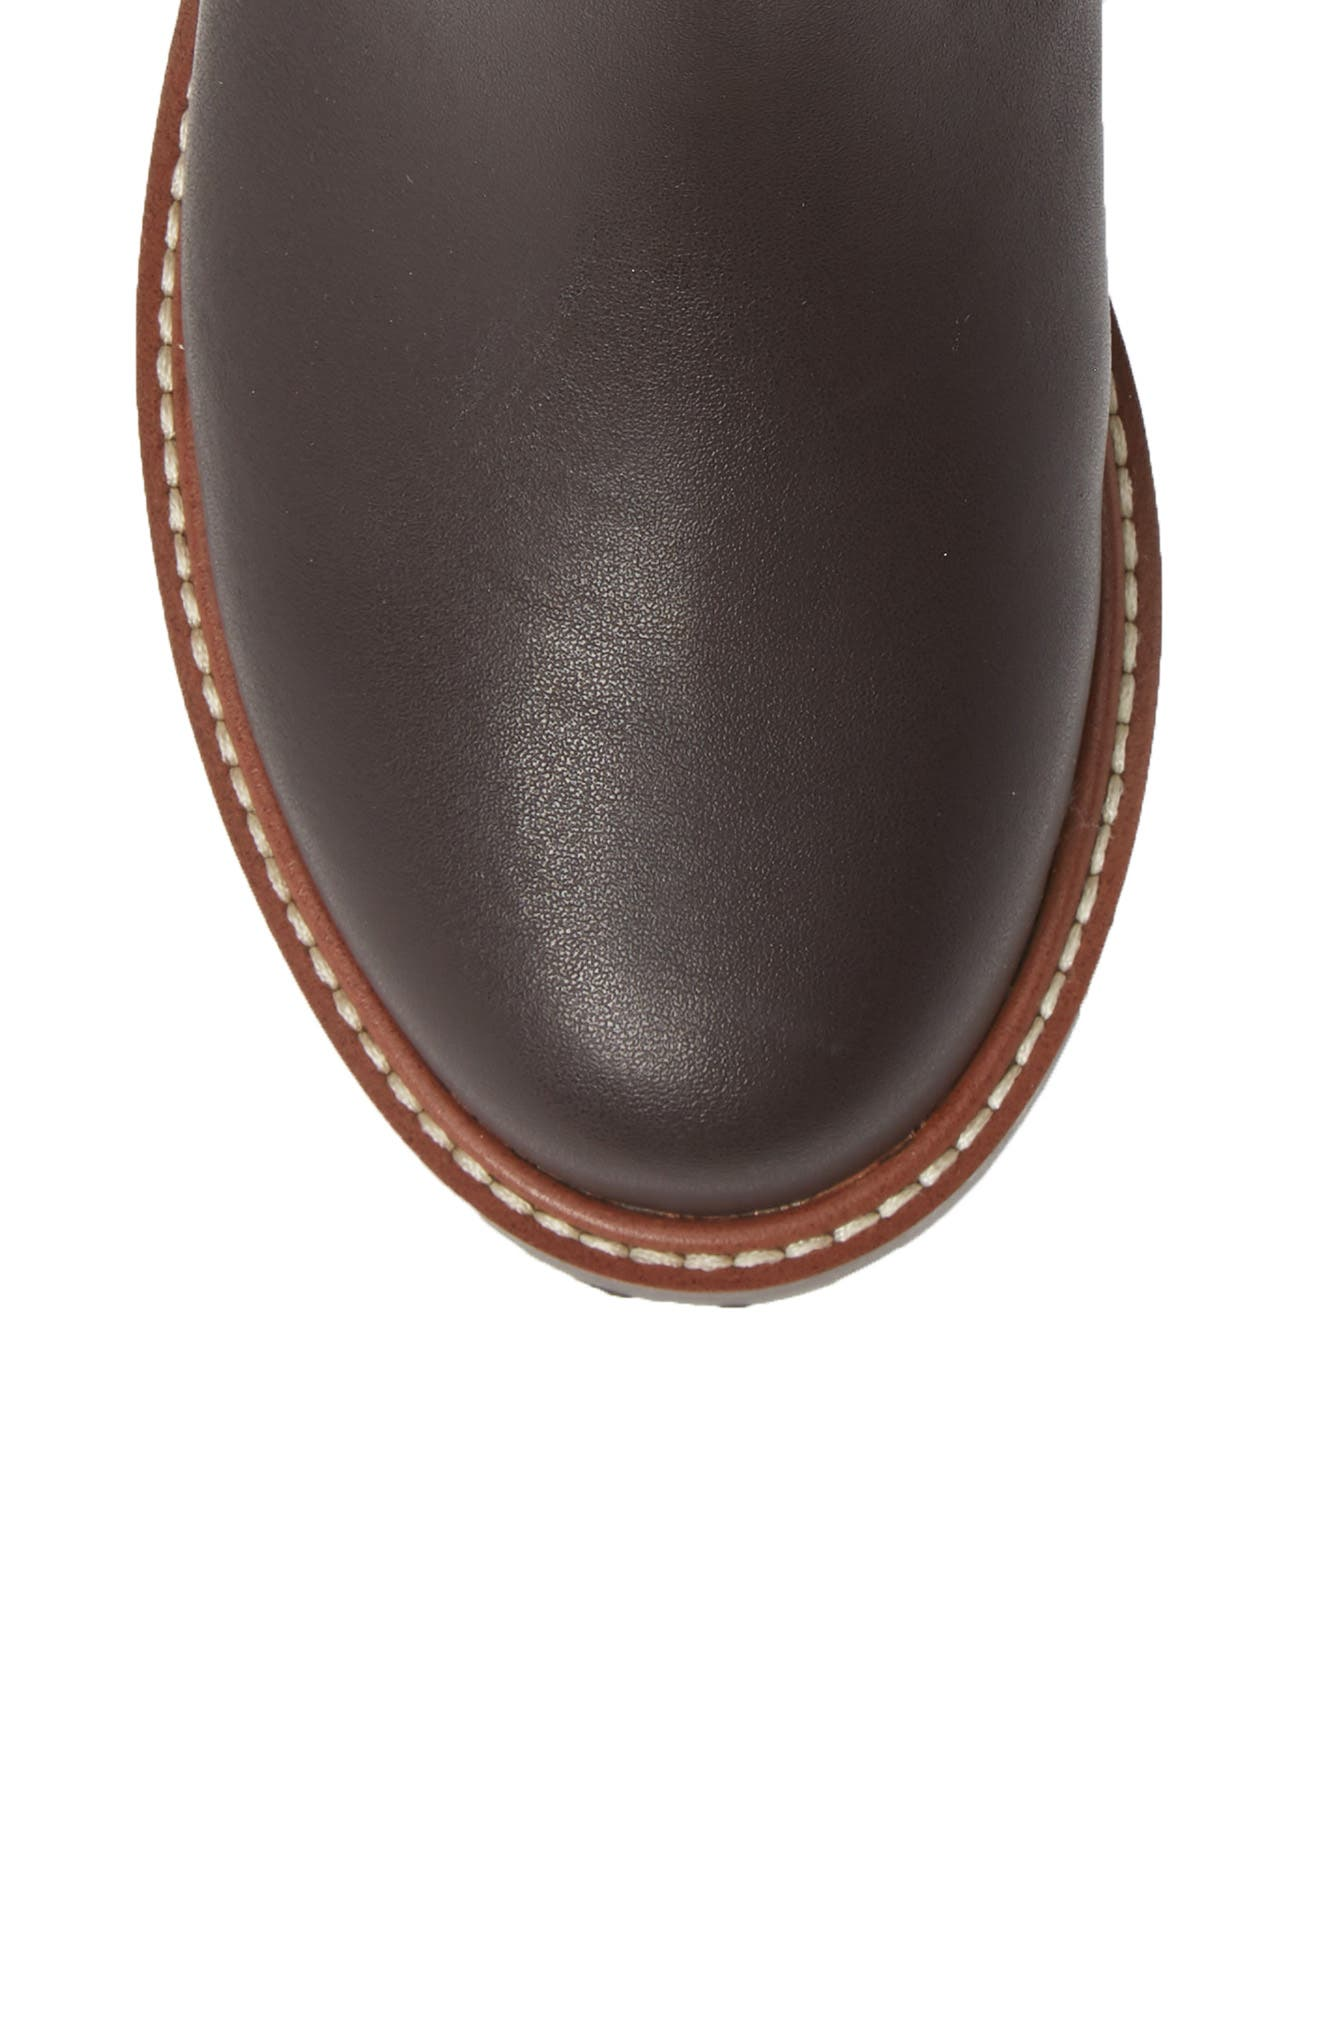 Chelsea Boot,                             Alternate thumbnail 5, color,                             CHOCOLATE OILED LEATHER